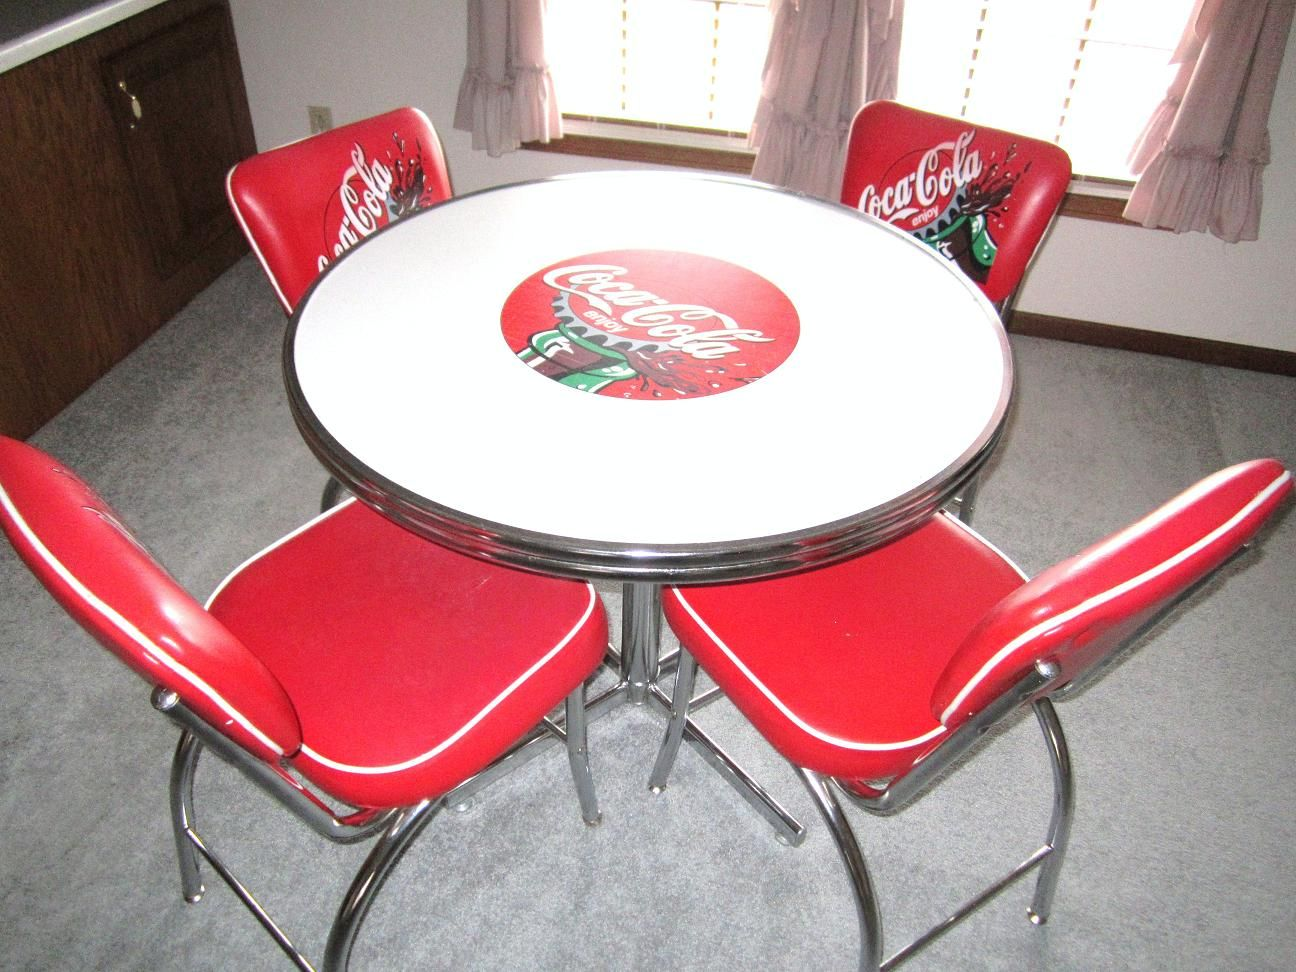 This Coke Dining Table And Chairs Set Is Just One Of Many